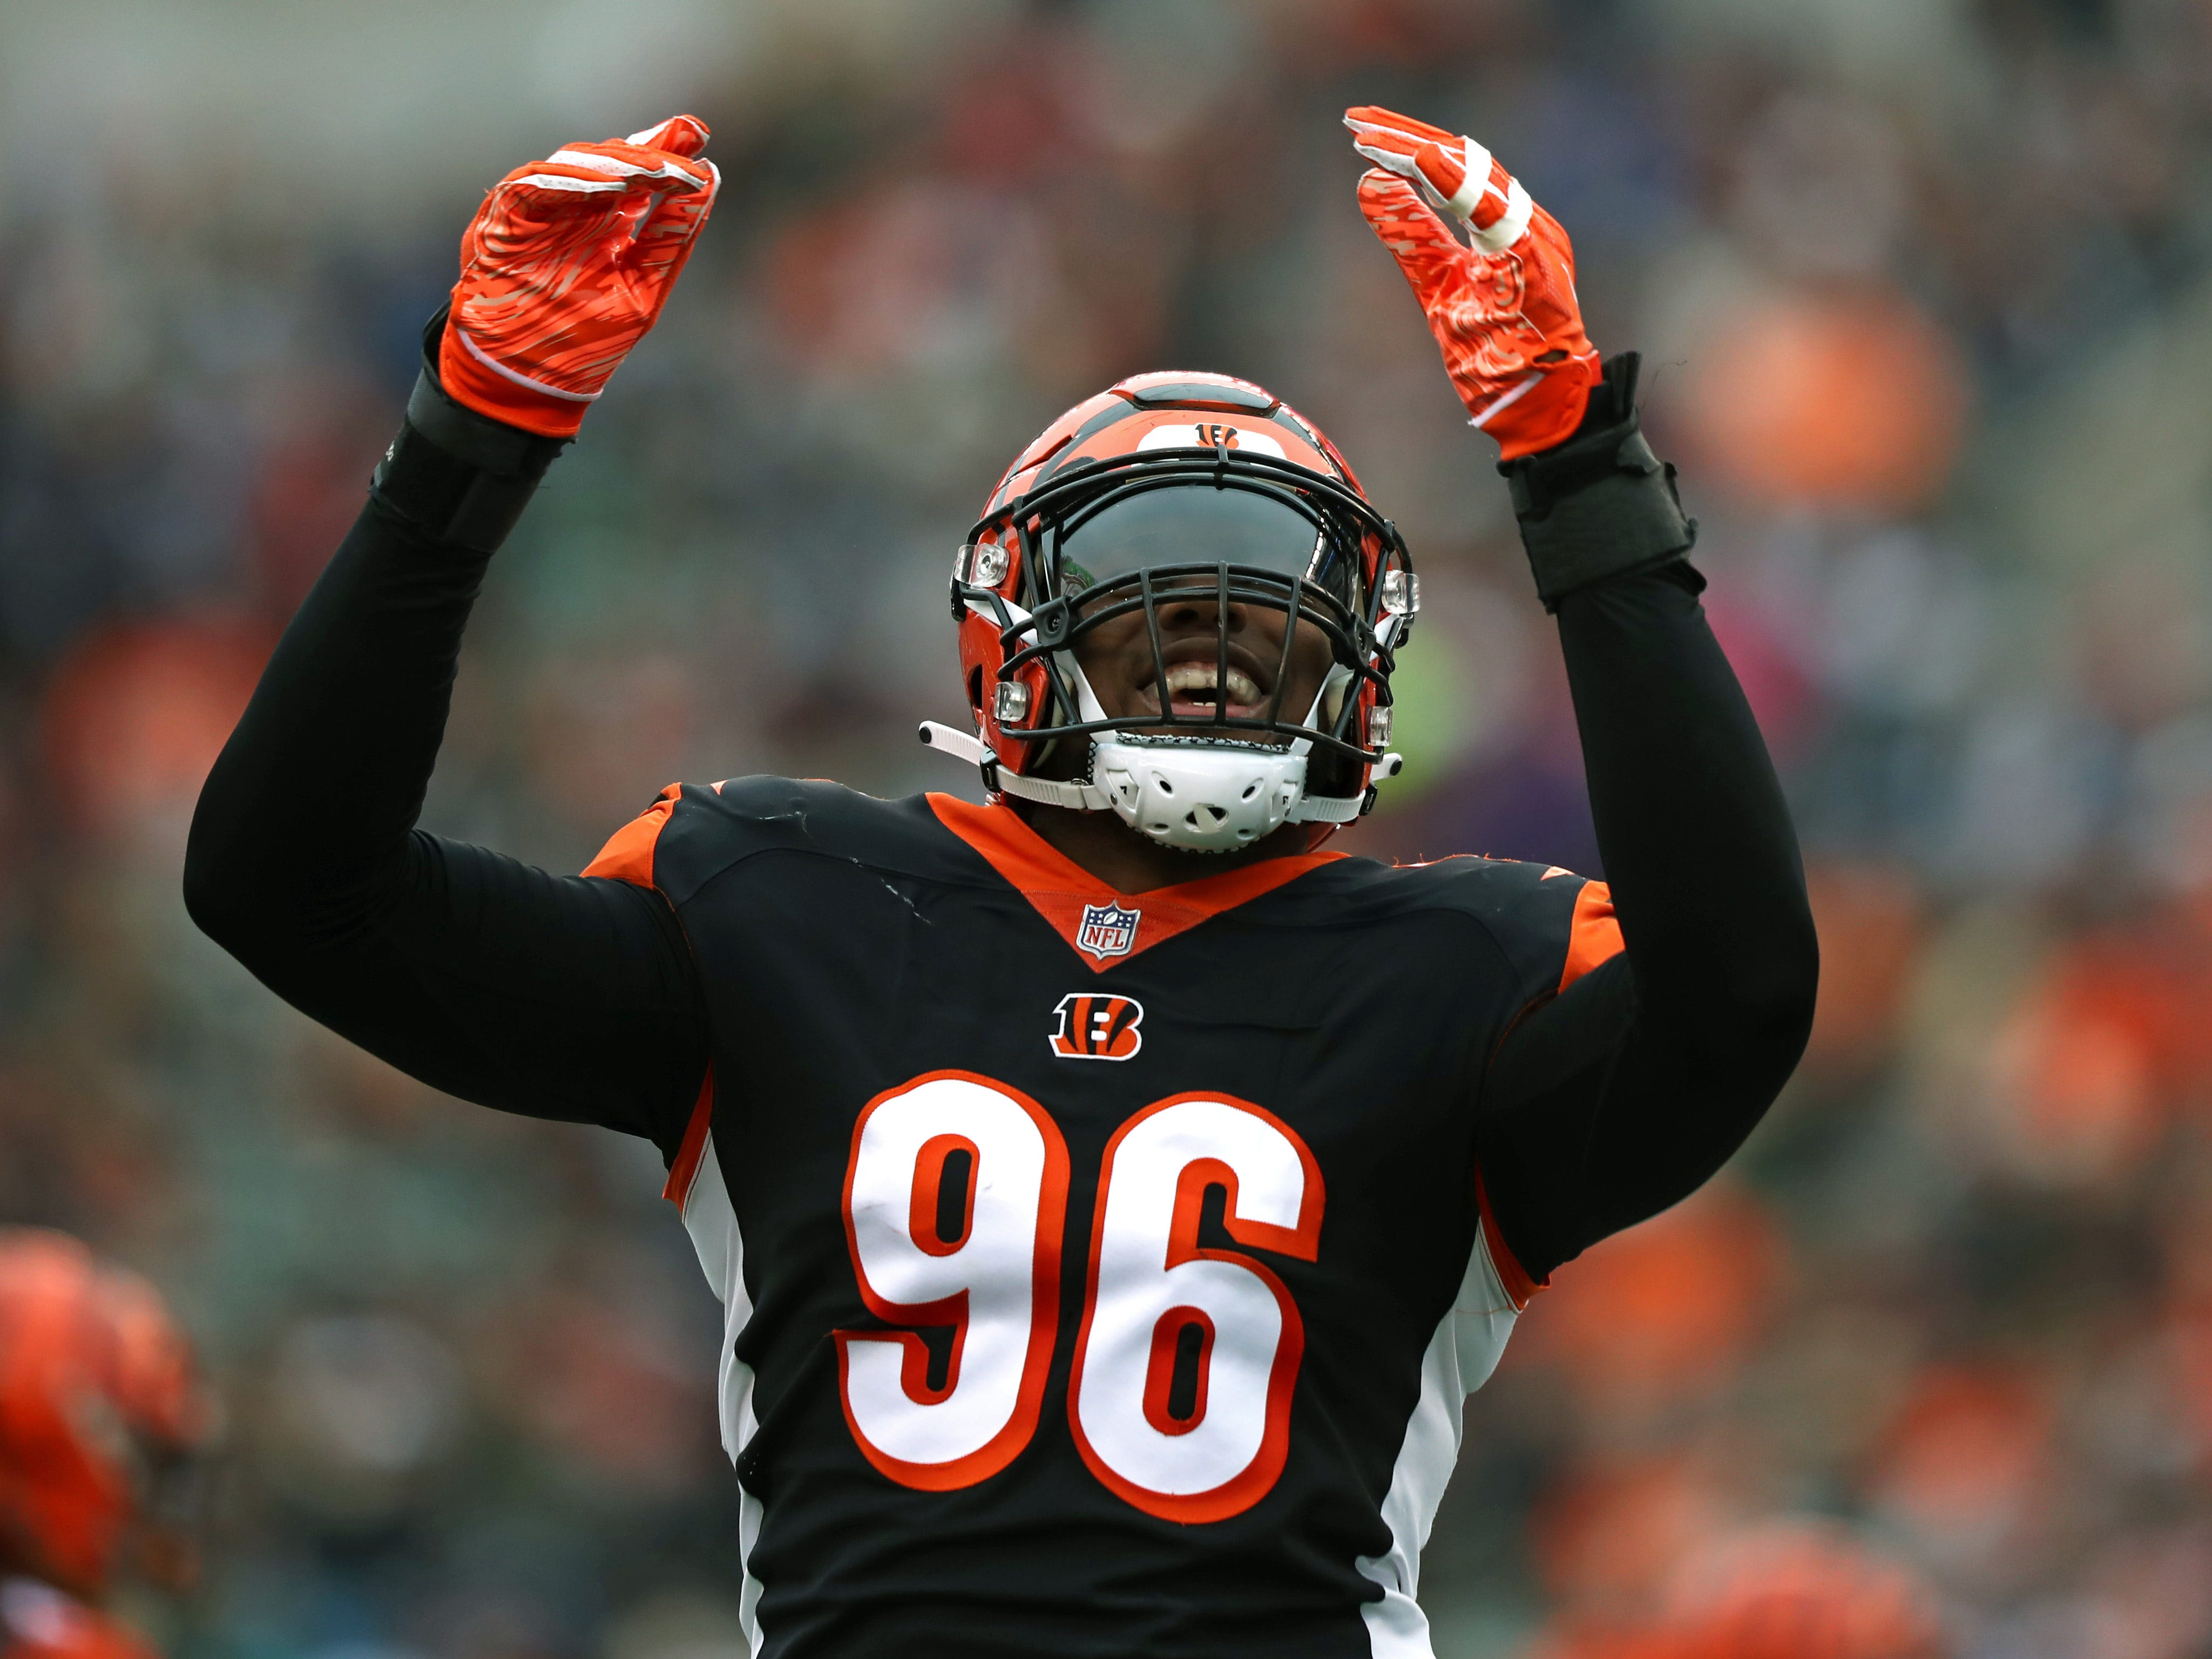 Bengals defensive end Carlos Dunlap reacts against the Raiders in the first half.